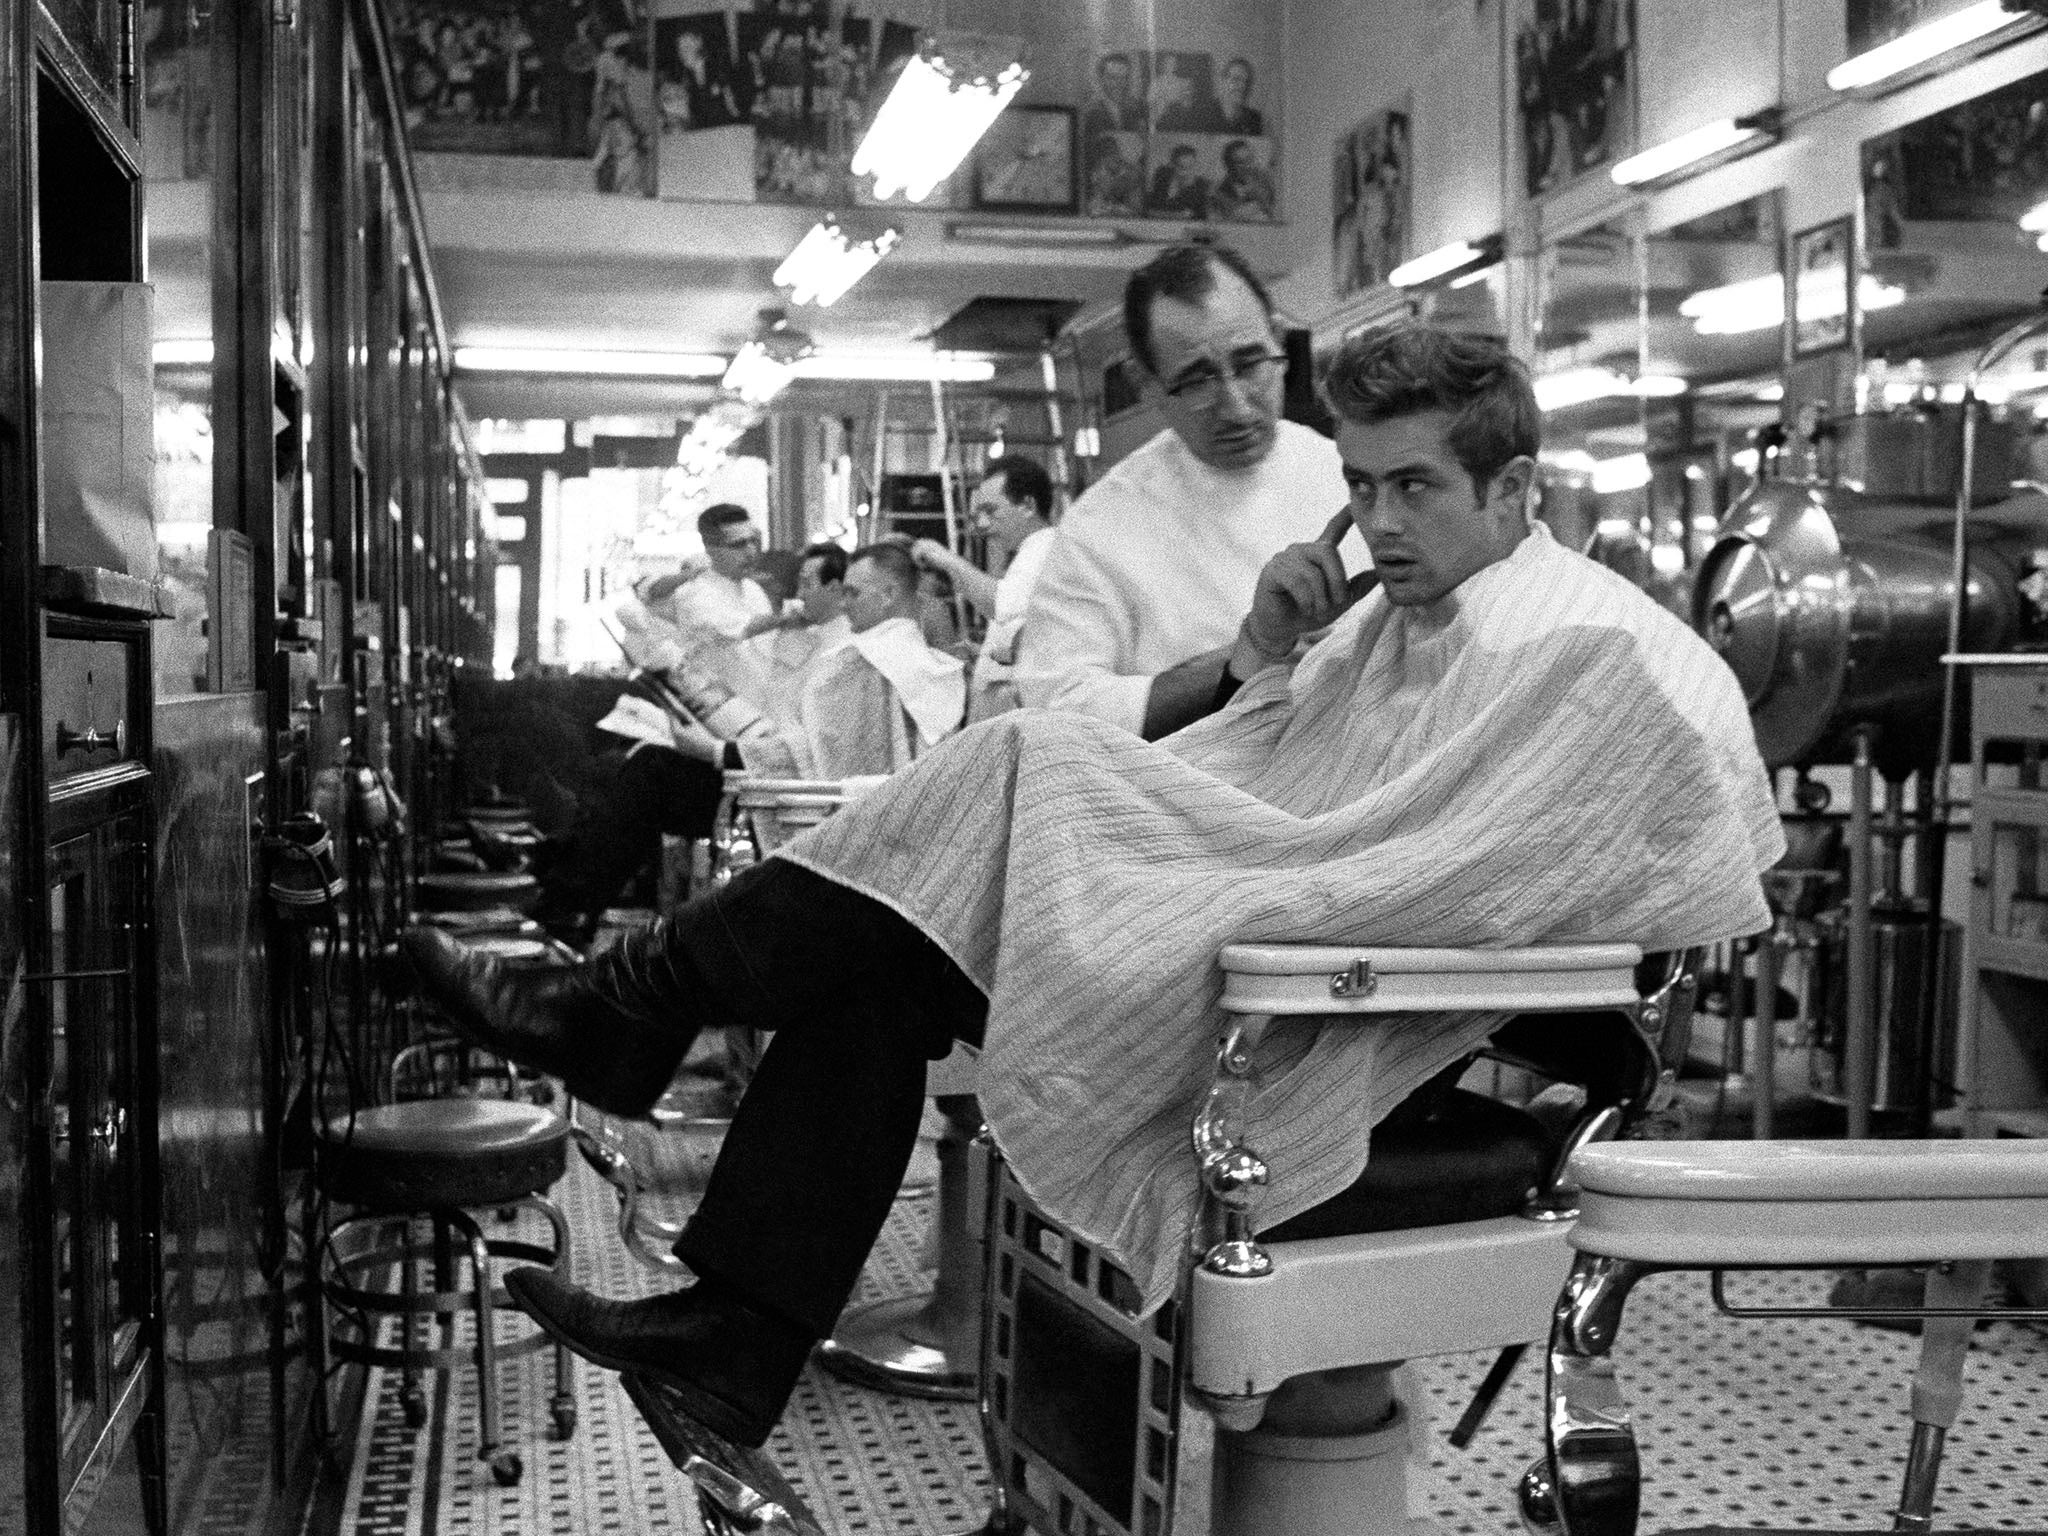 james dean press photographer dennis stock on how he came to know james dean press photographer dennis stock on how he came to know and love the doomed screen idol the